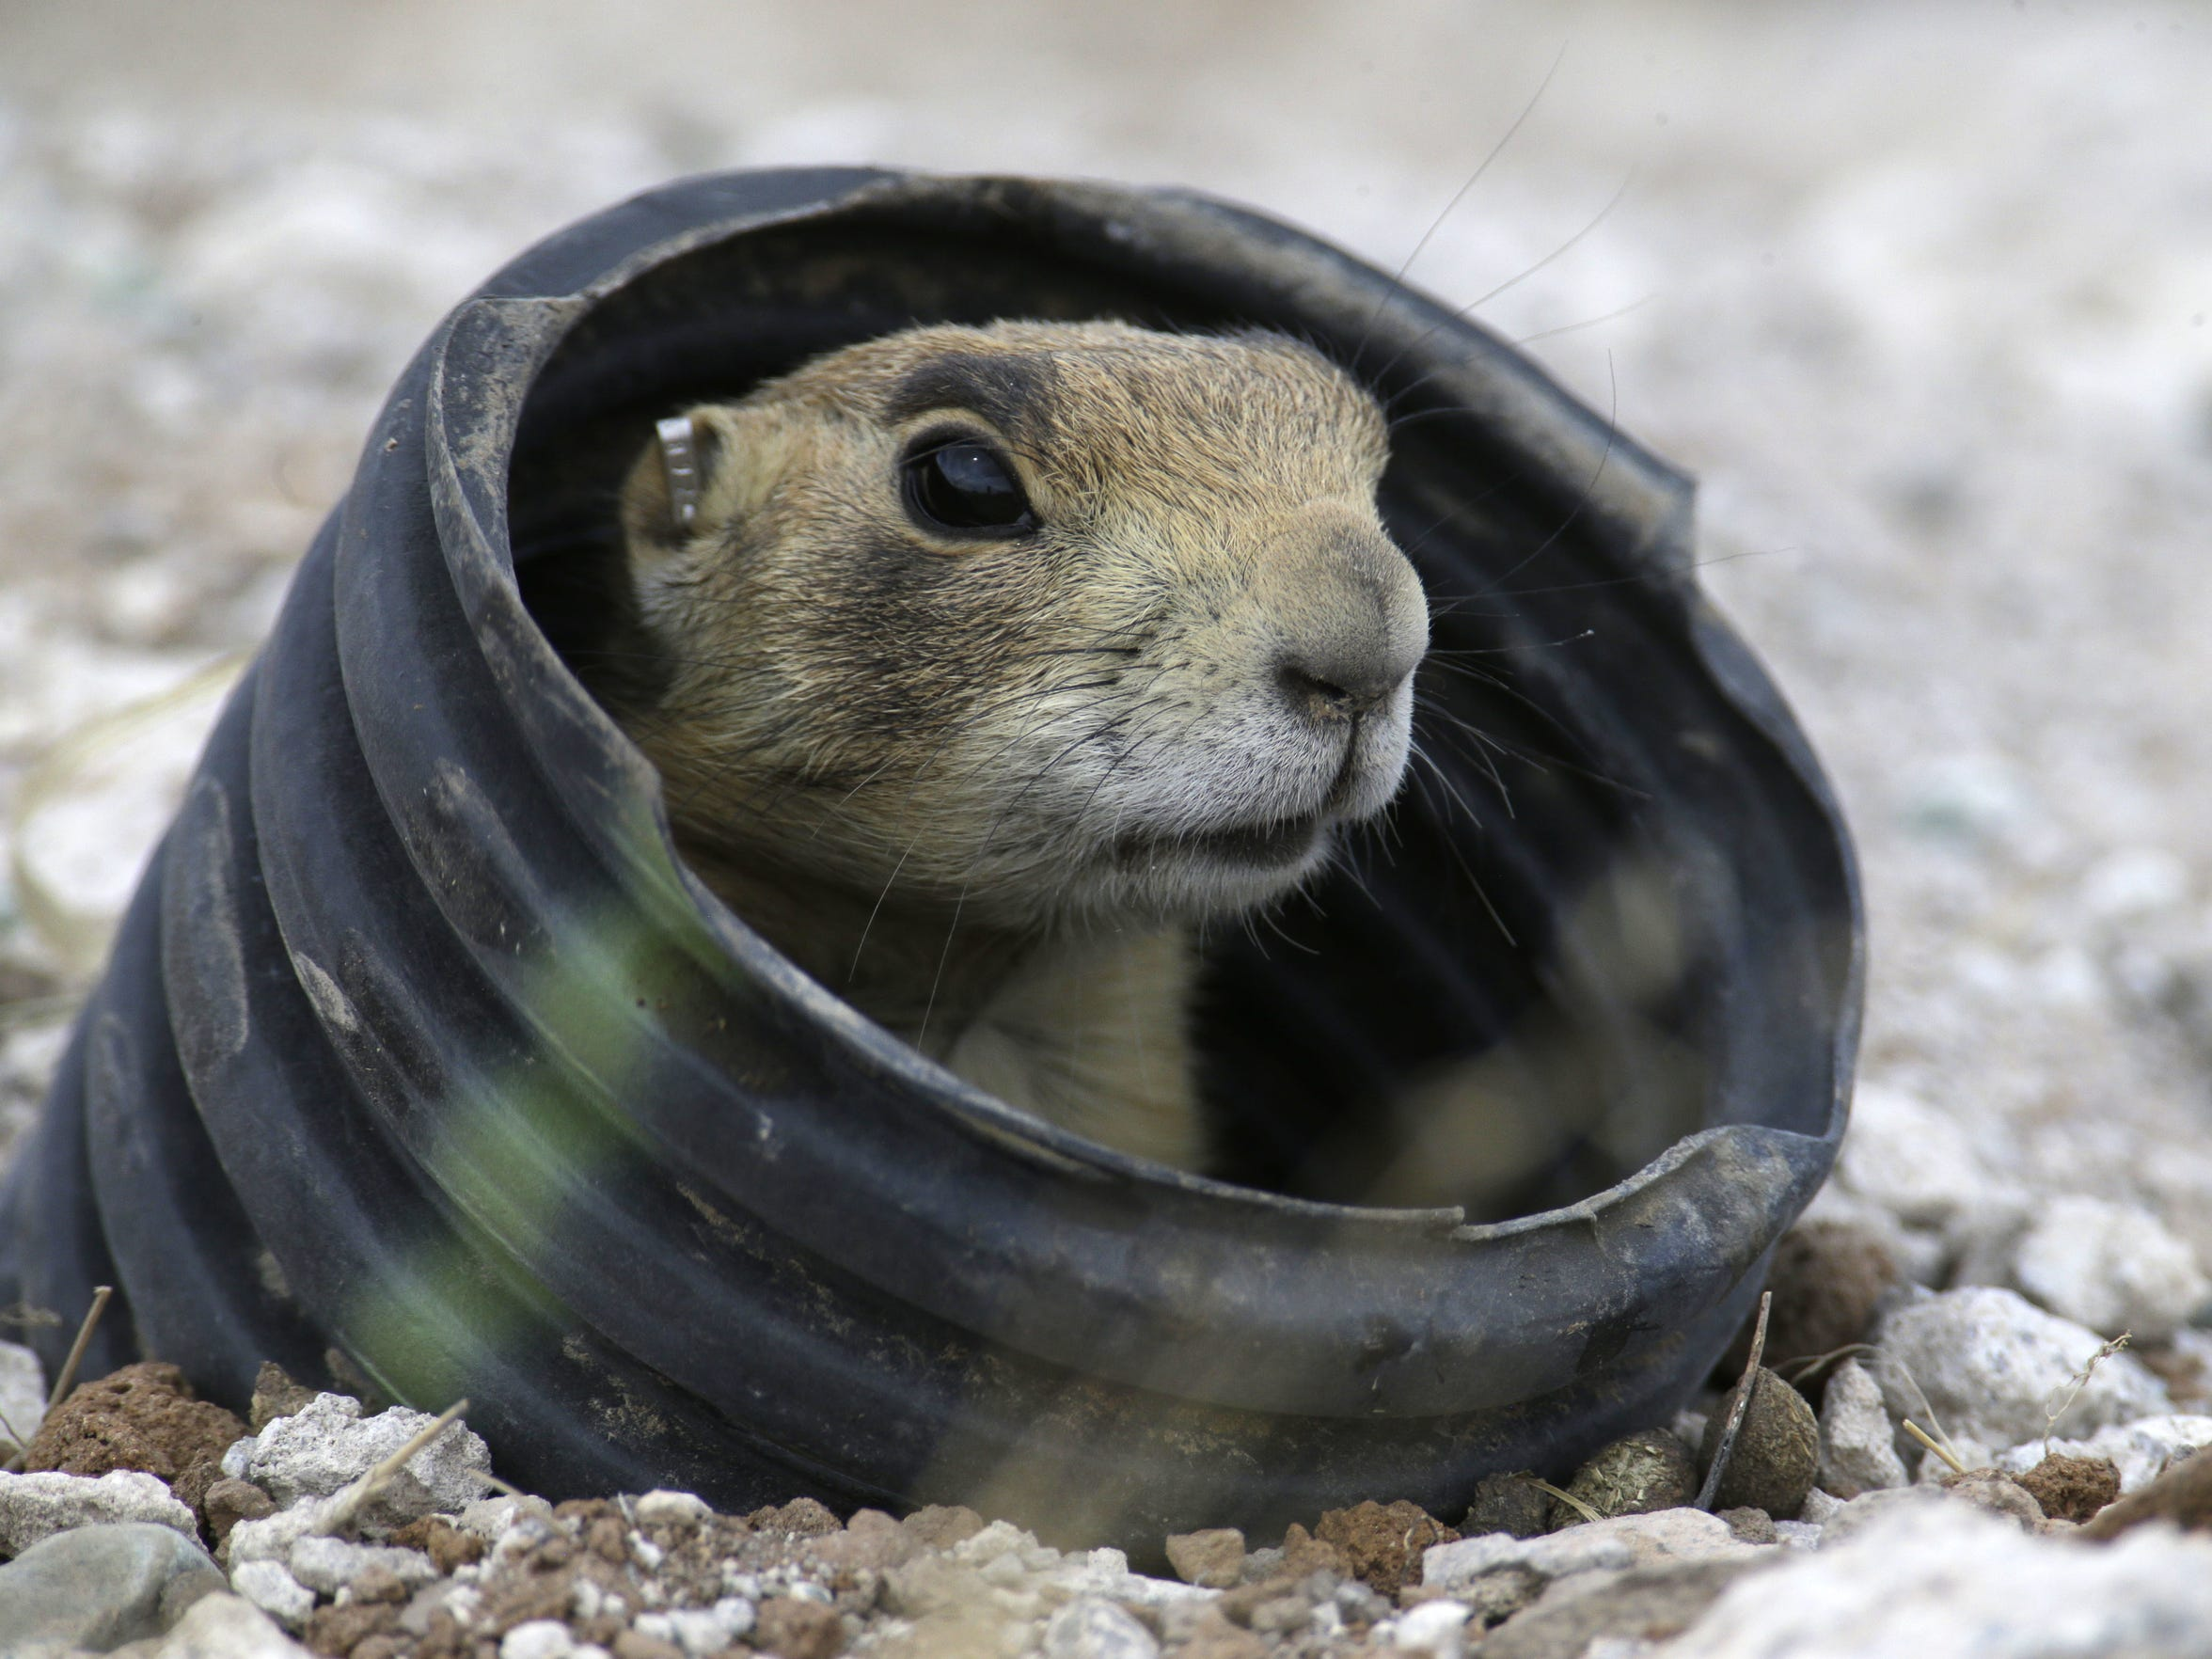 A prairie dog looks from a artificial burrow made